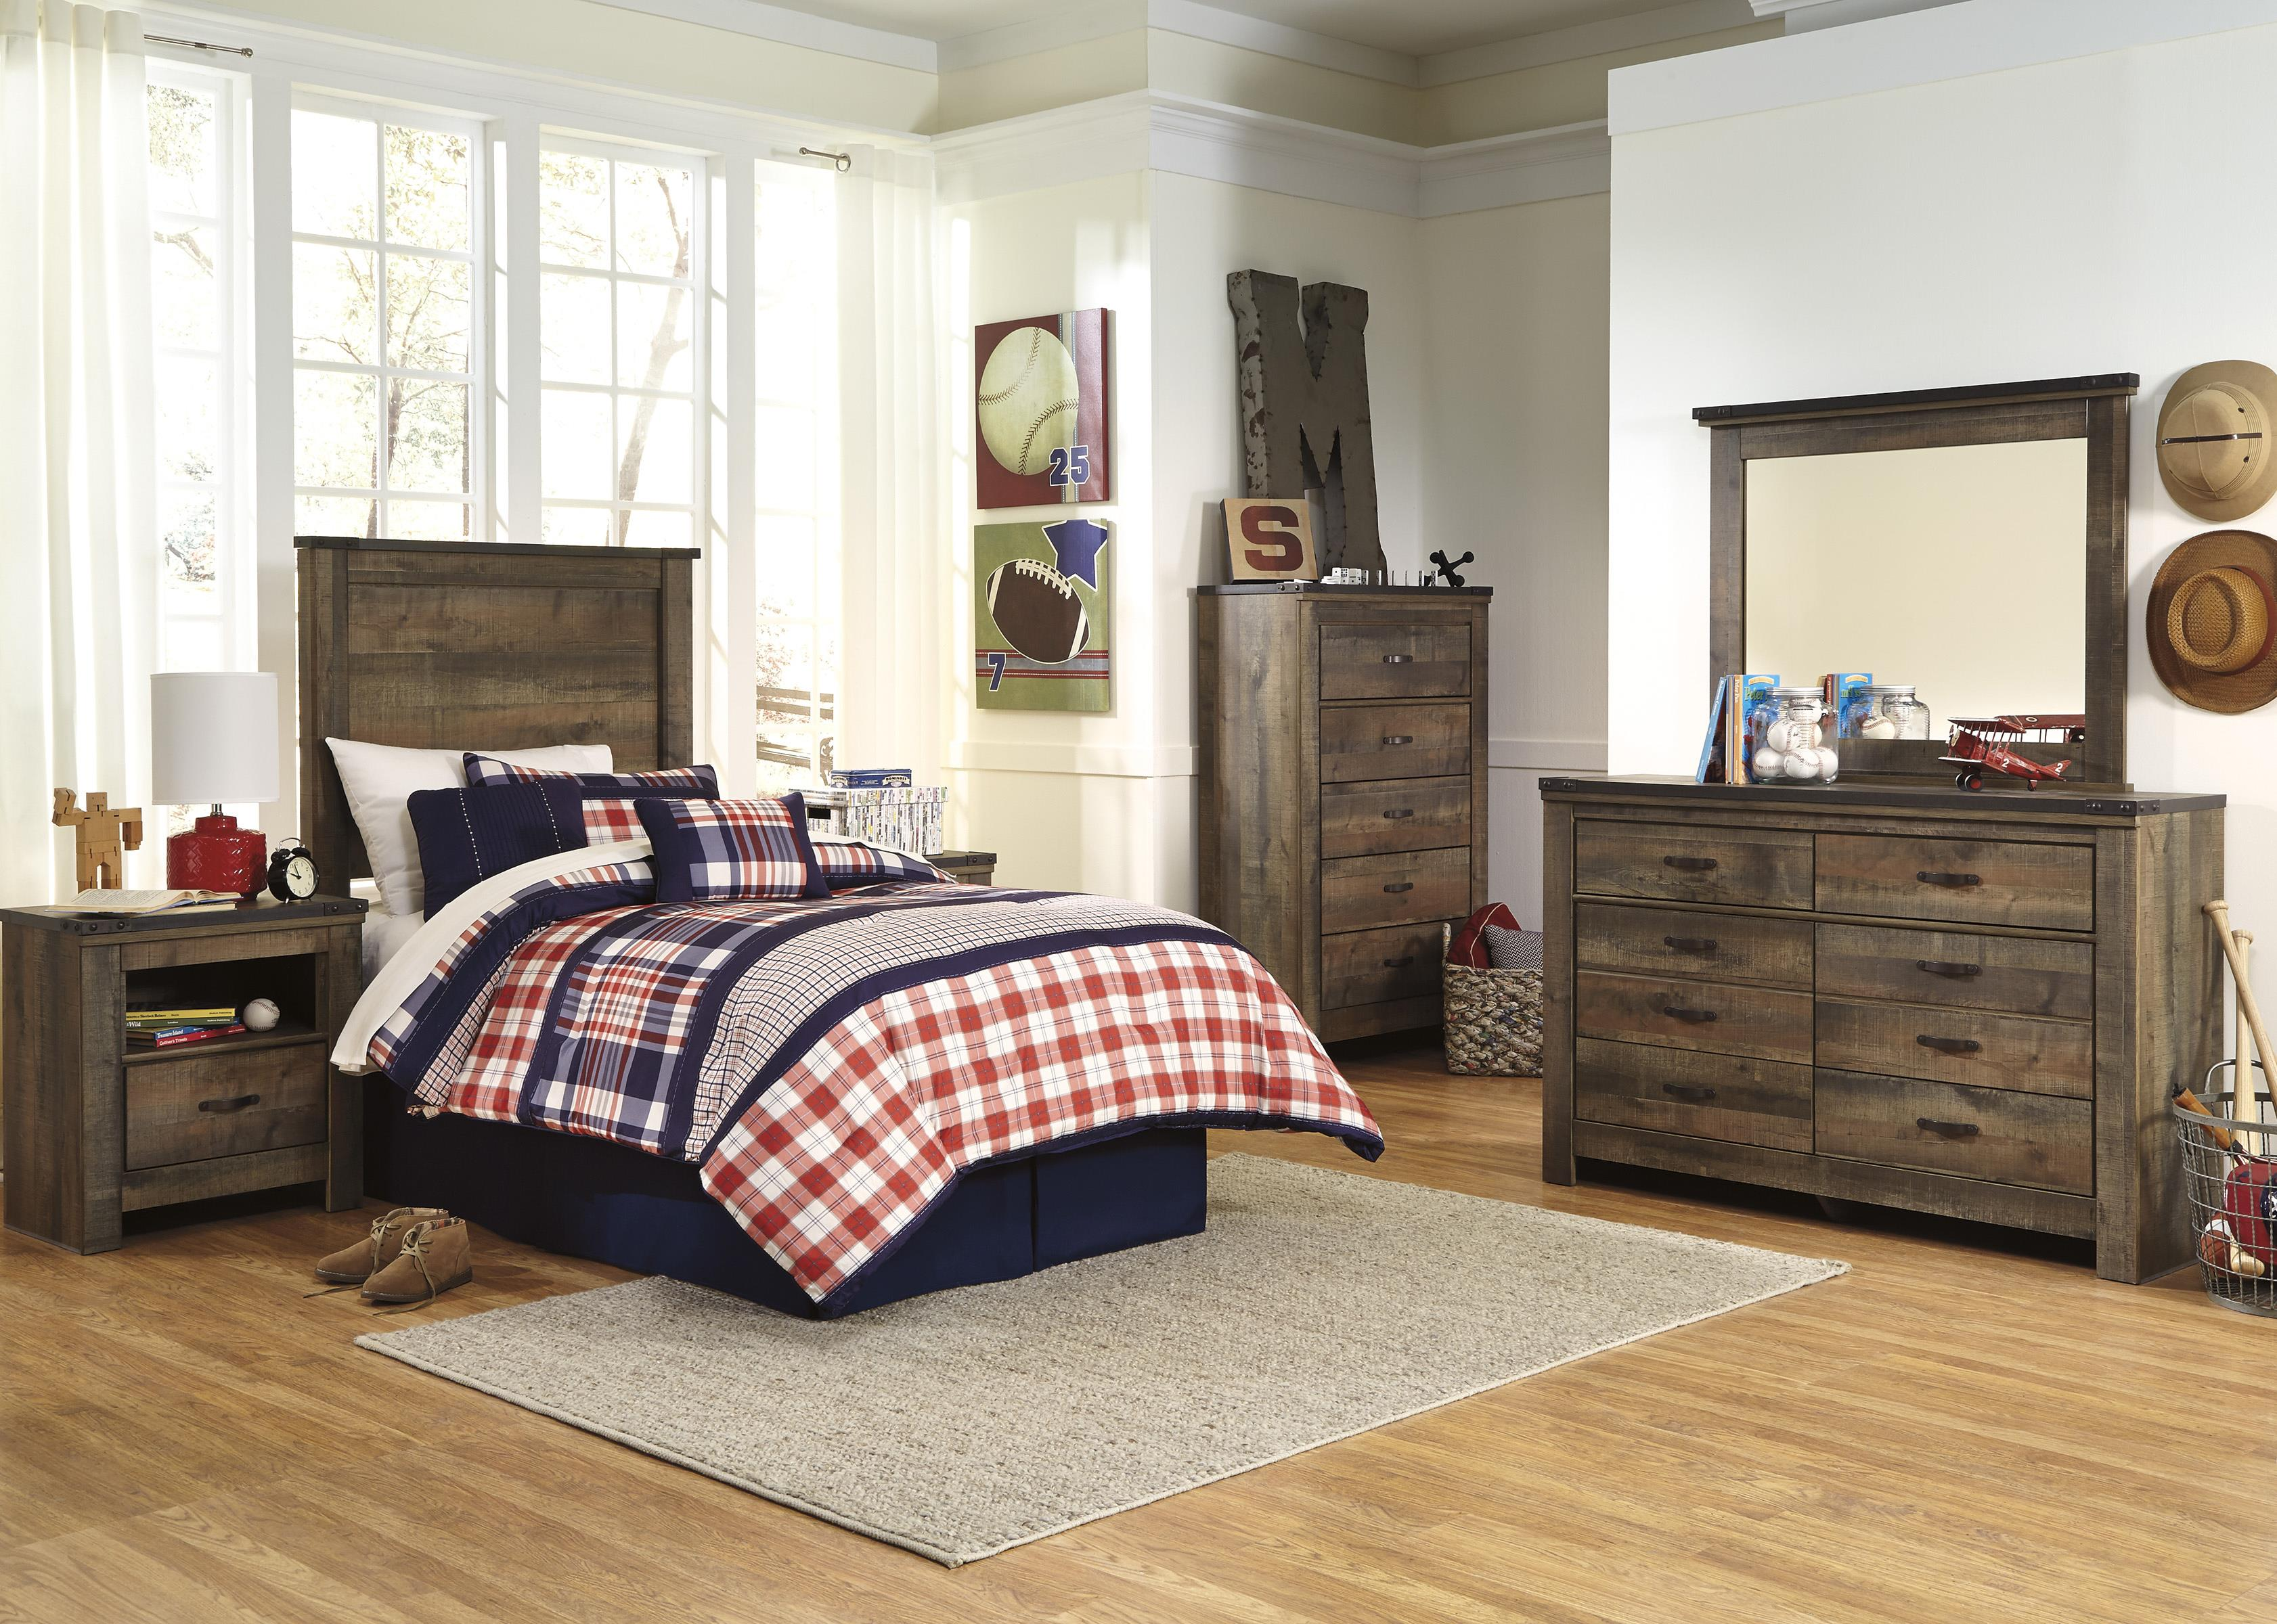 Trinell Twin Bedroom Group by Signature Design by Ashley at Sparks HomeStore